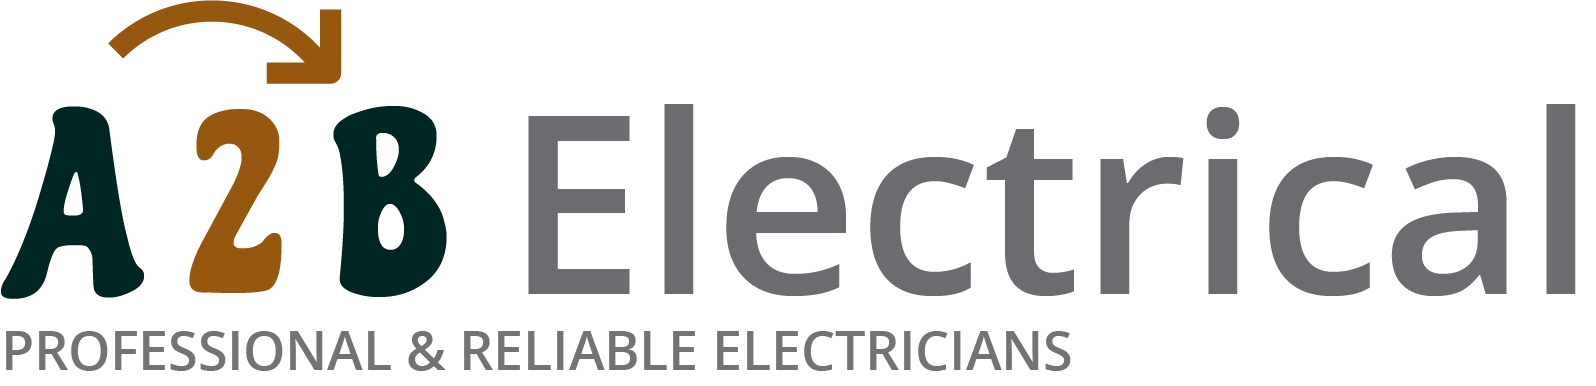 If you have electrical wiring problems in Coulsdon, we can provide an electrician to have a look for you.